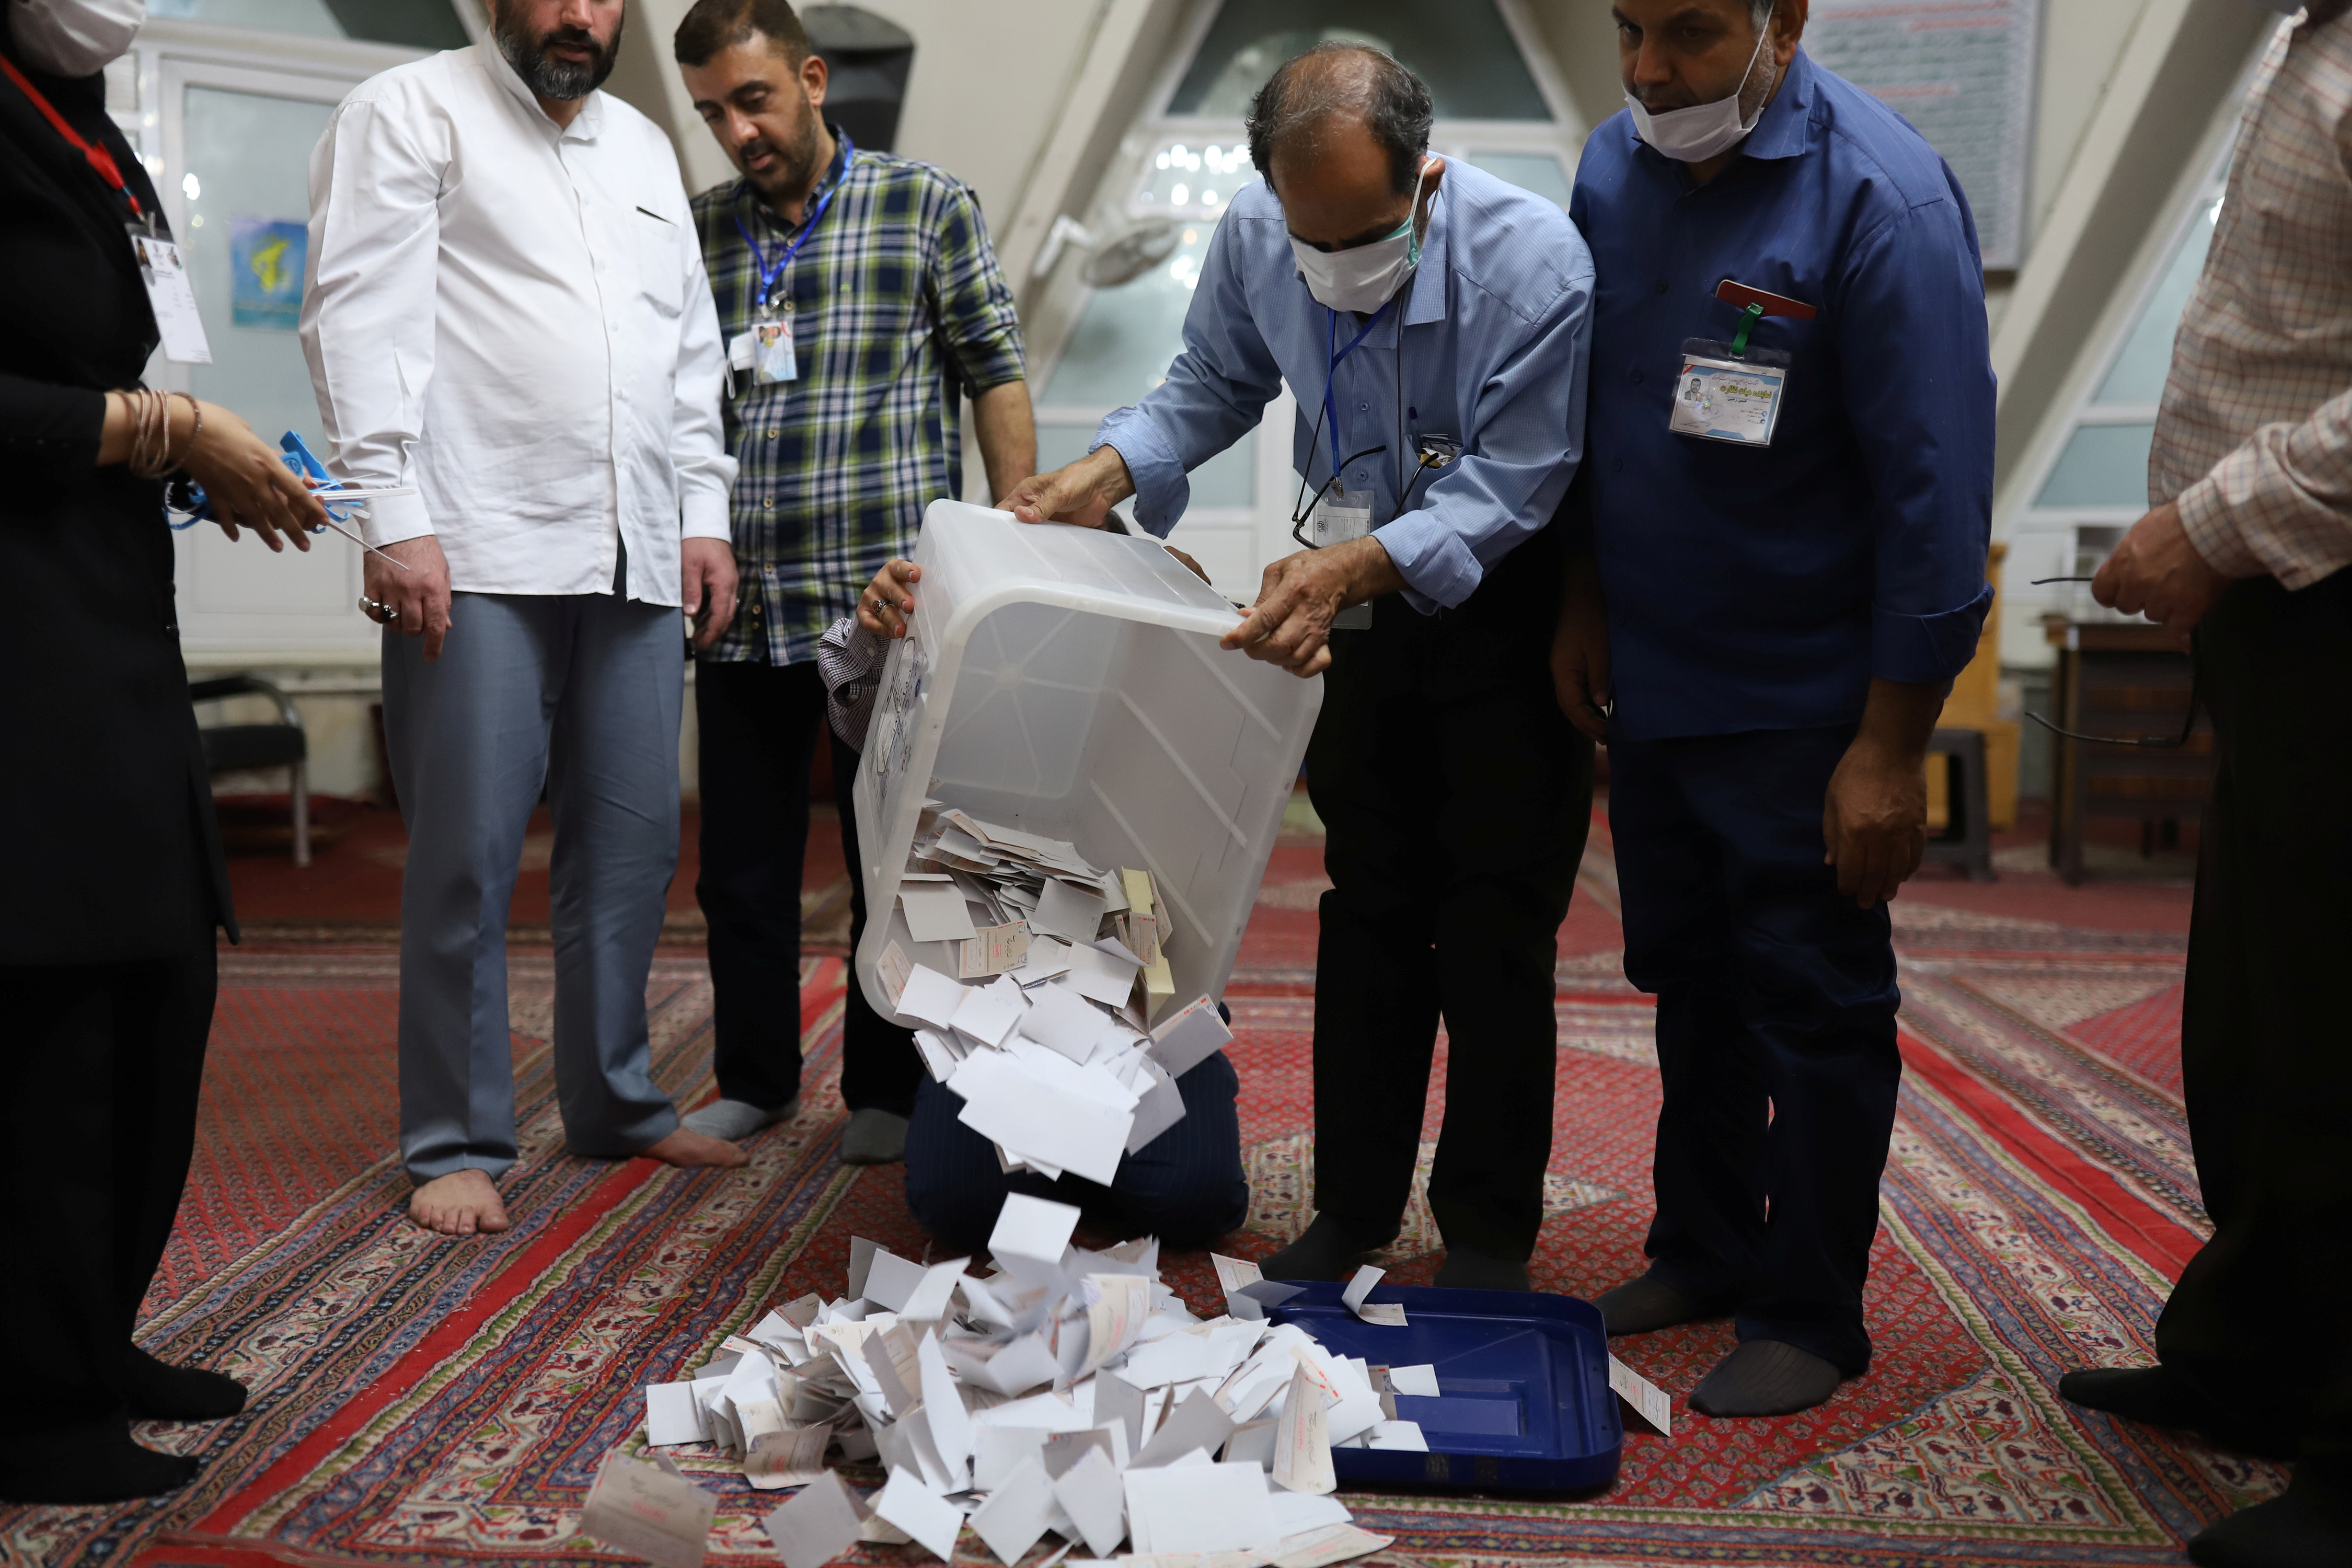 An electoral staff empties full ballot boxes after voting ended in the presidential election in Tehran, Iran June 19, 2021. Majid Asgaripour/WANA (West Asia News Agency) via REUTERS